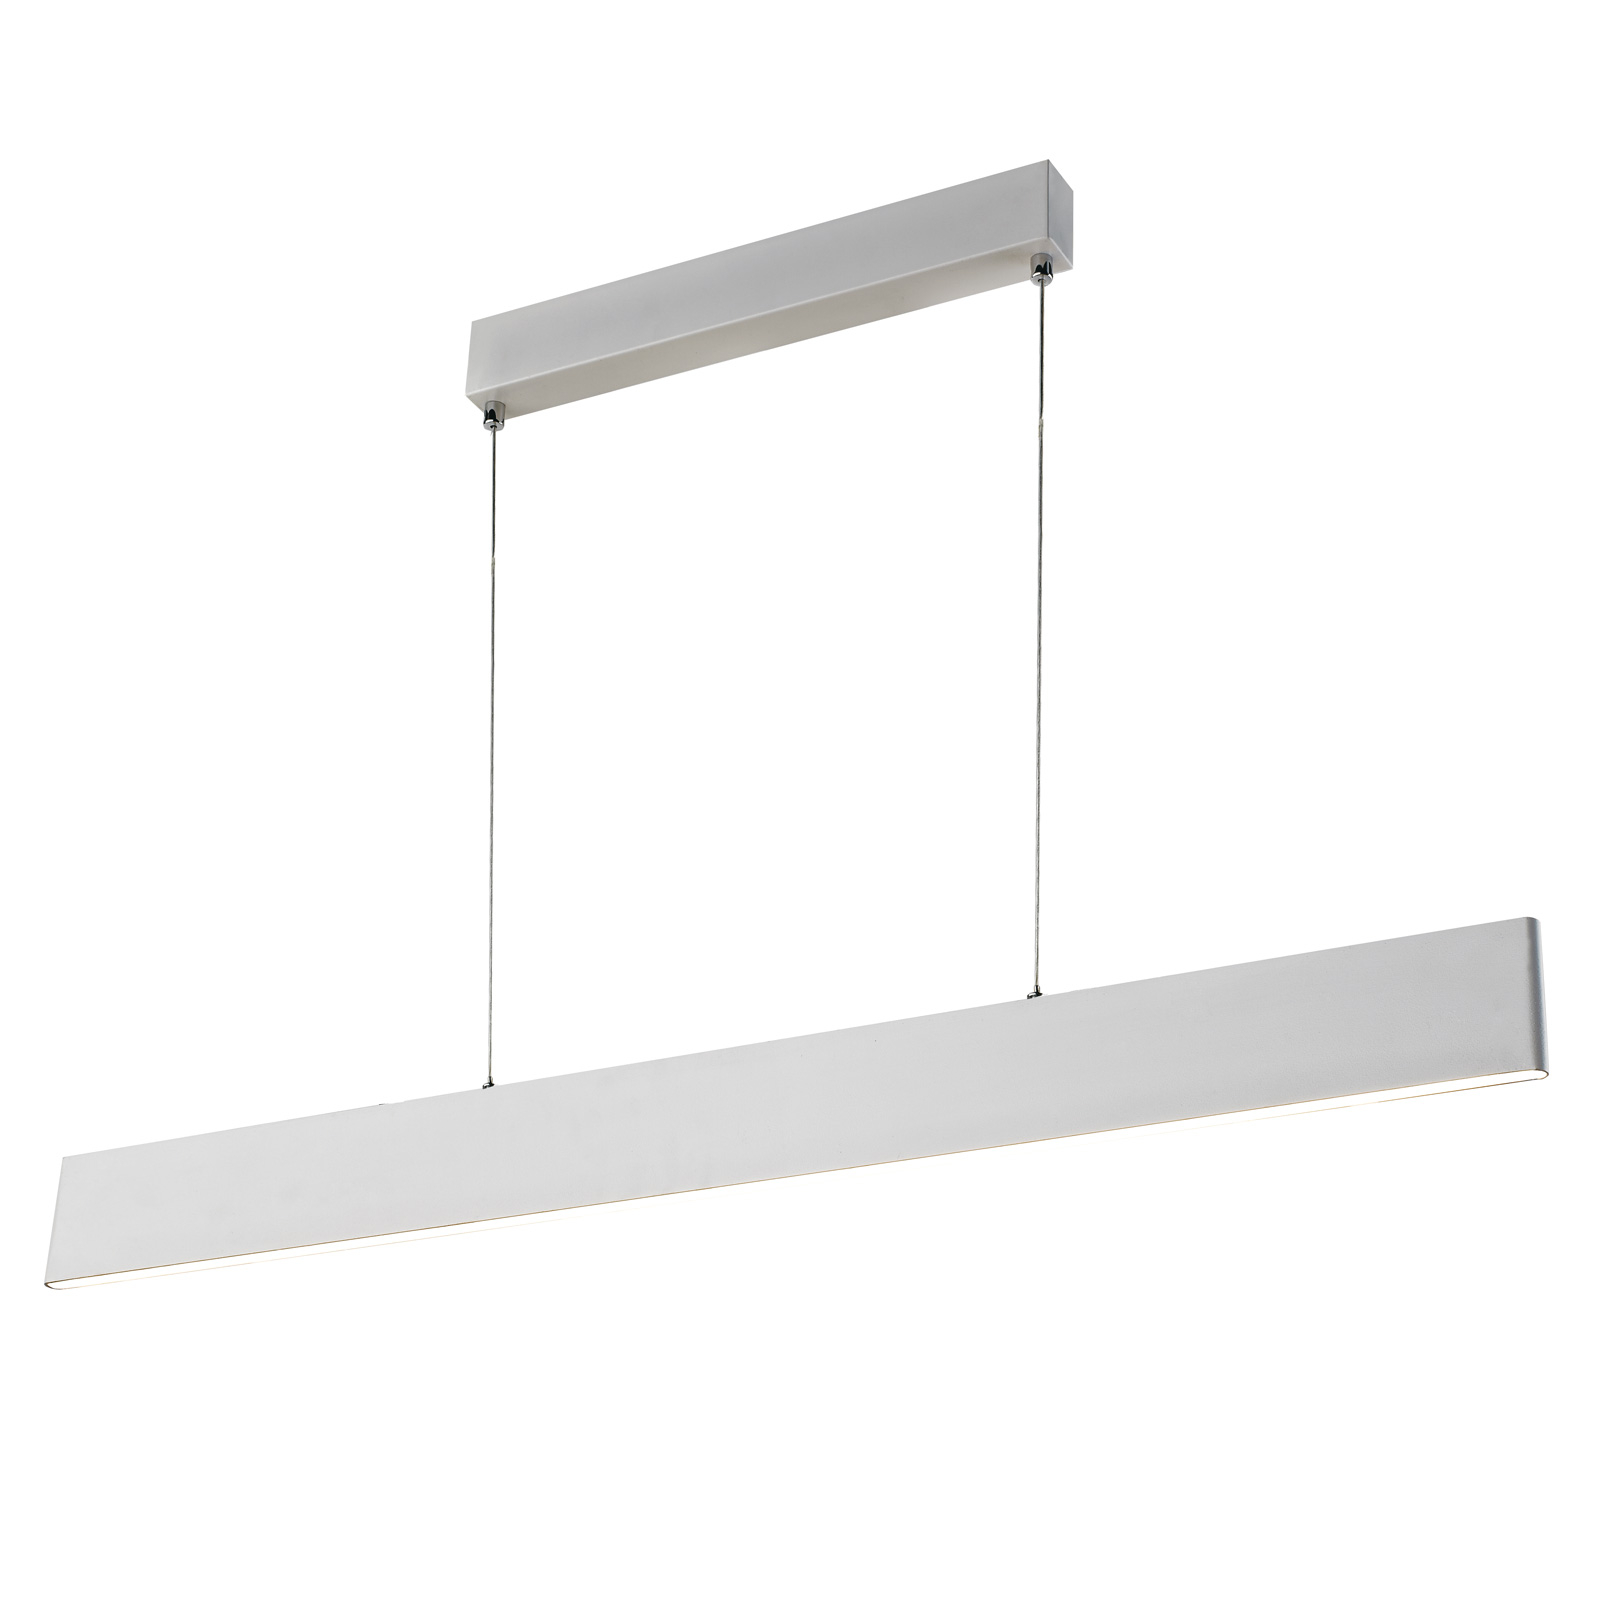 Suspension LED Sileas, 91cm, blanche, dimmable